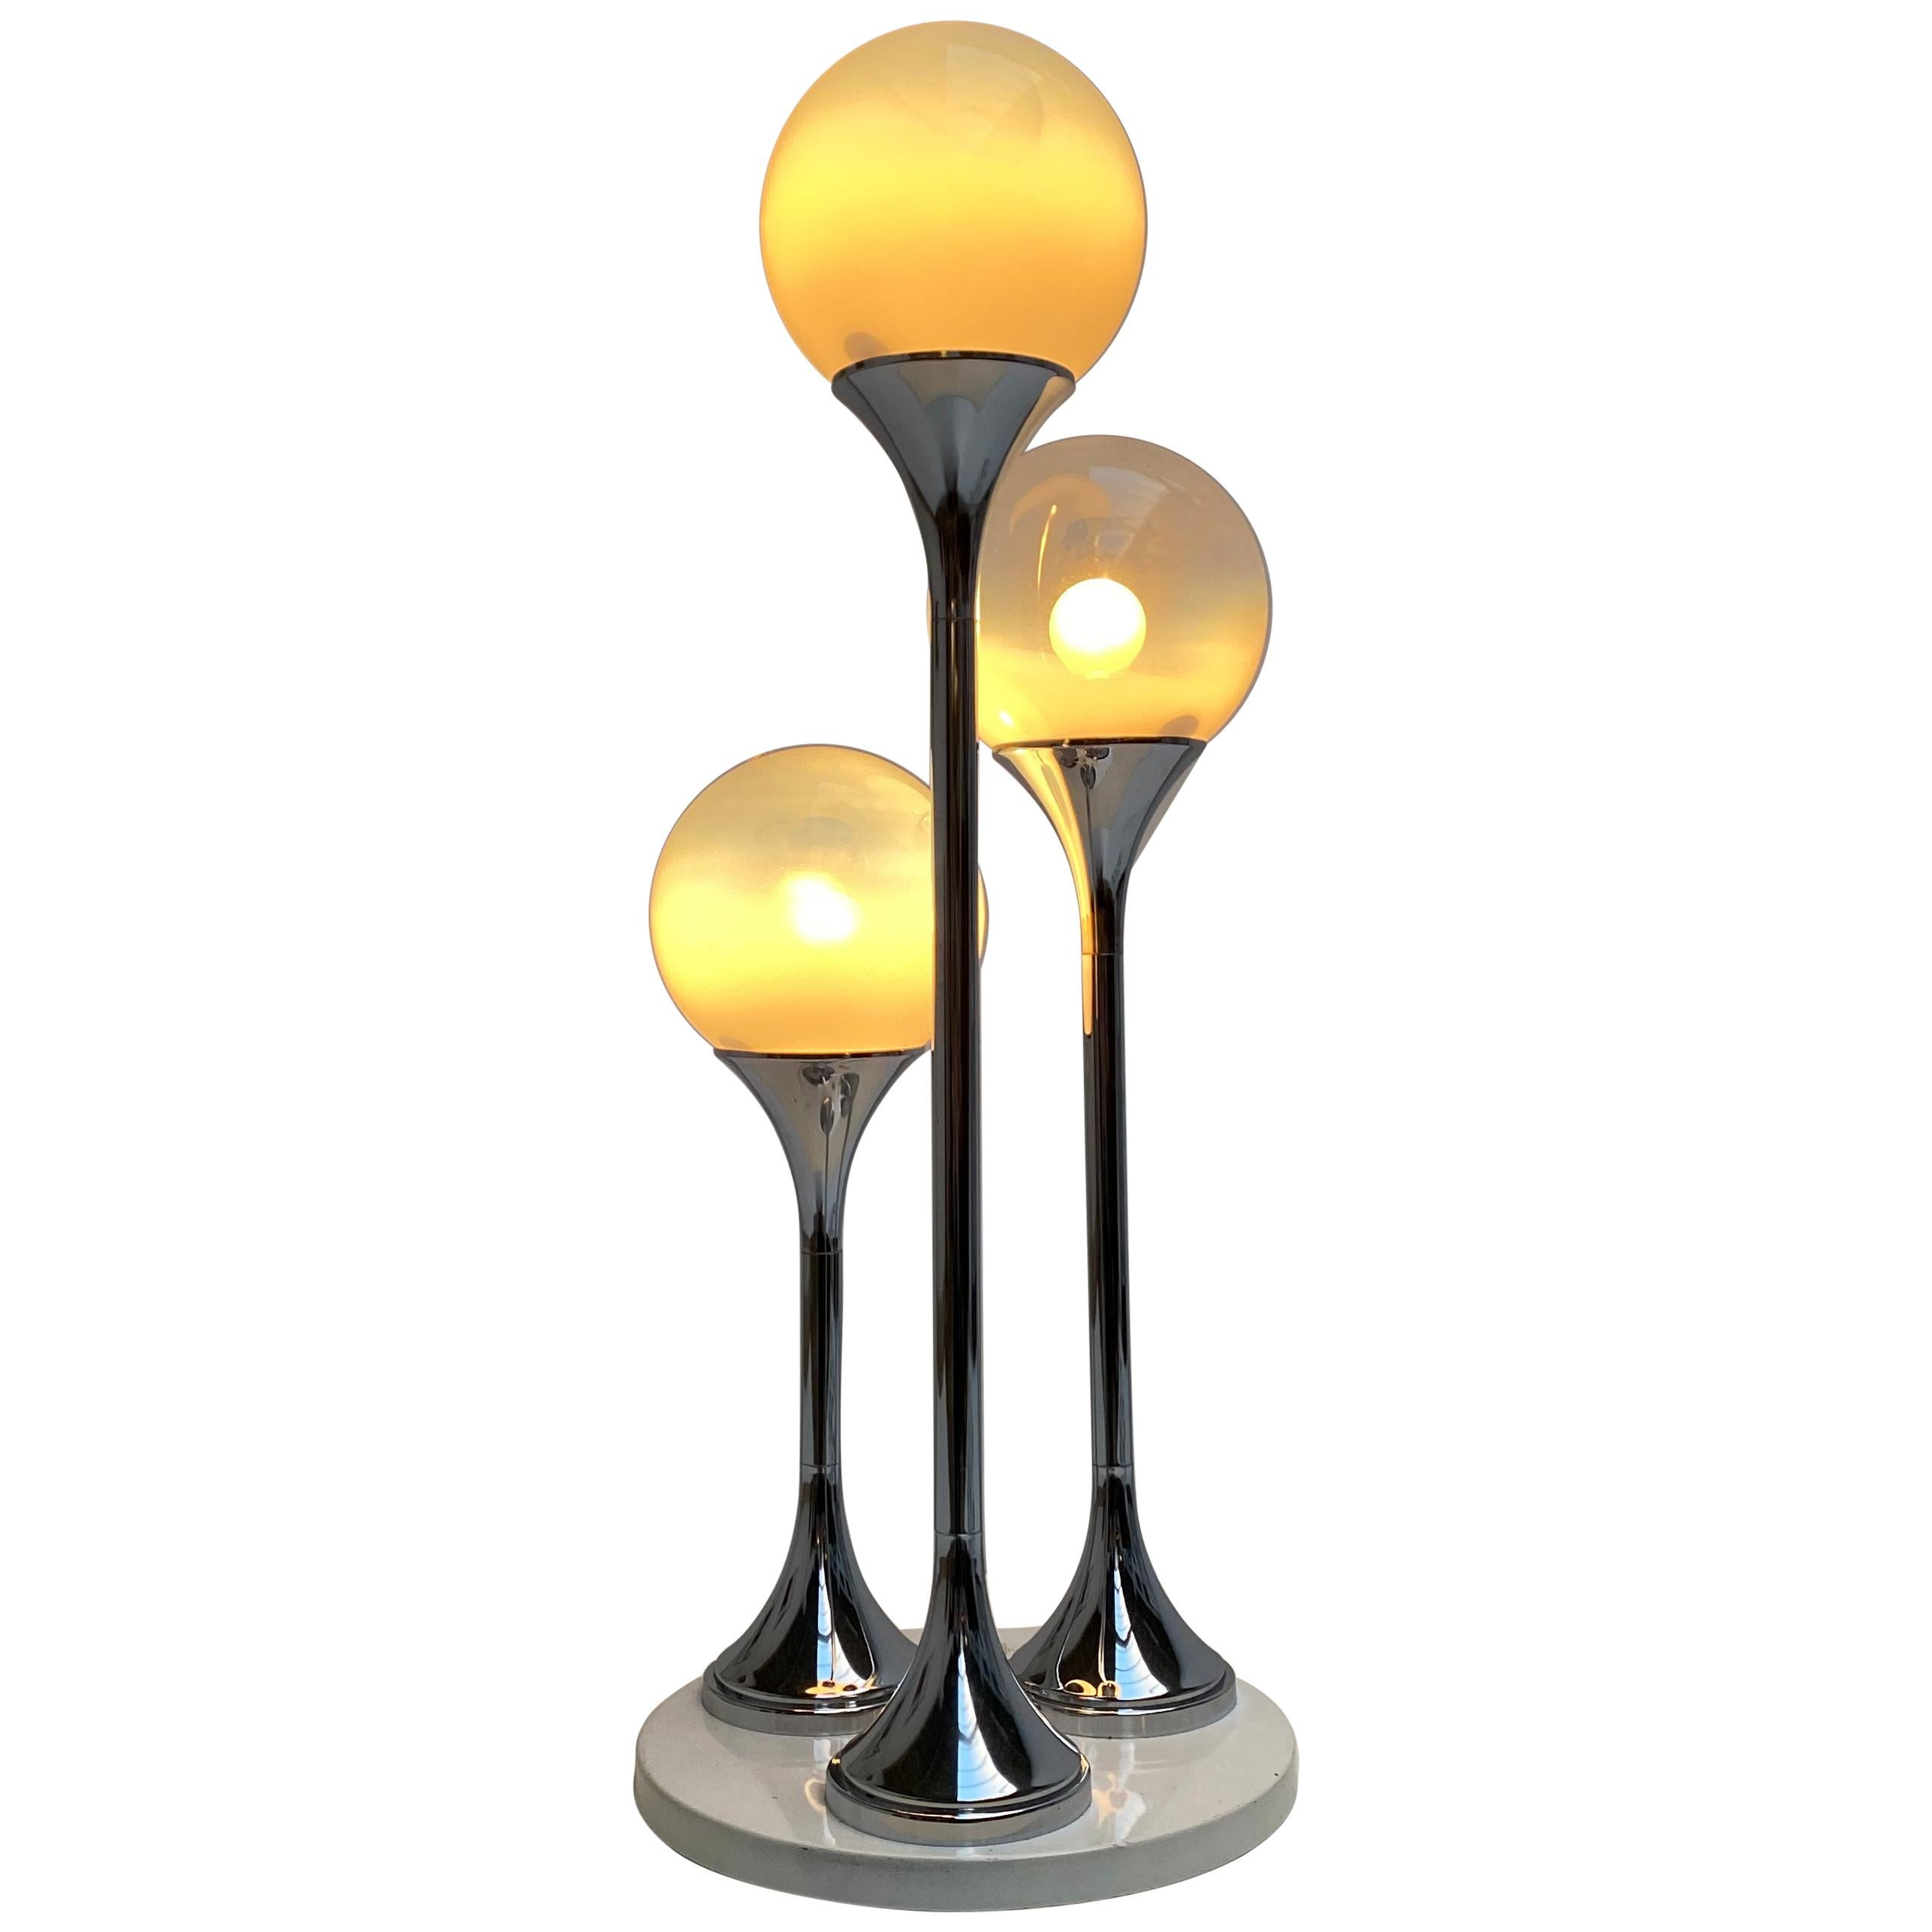 Wonderful Large Space Age Table Lamp by Targetti Sankey, Italy, 1970s